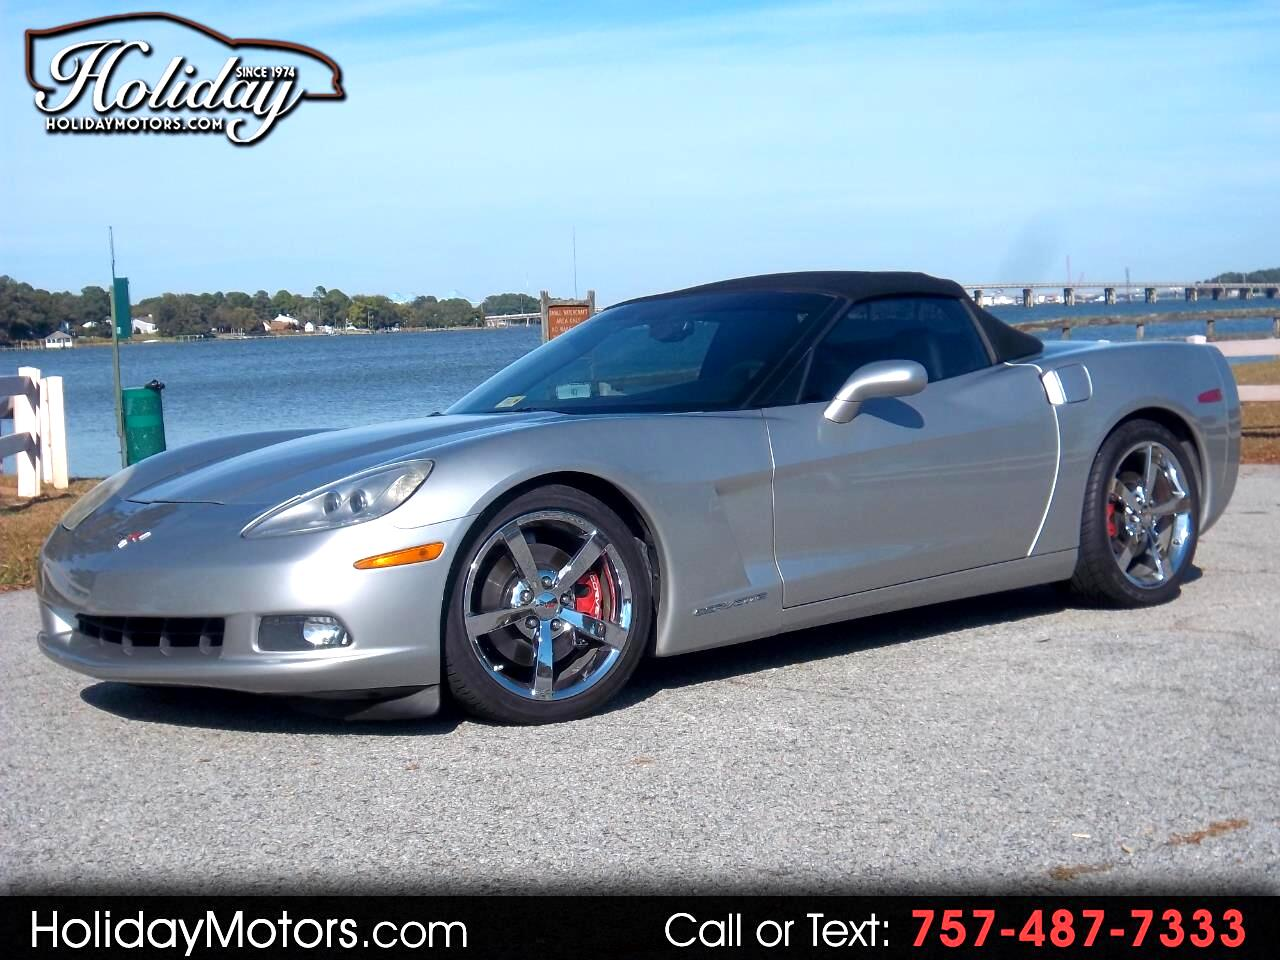 2005 Chevrolet Corvette 2dr Convertible